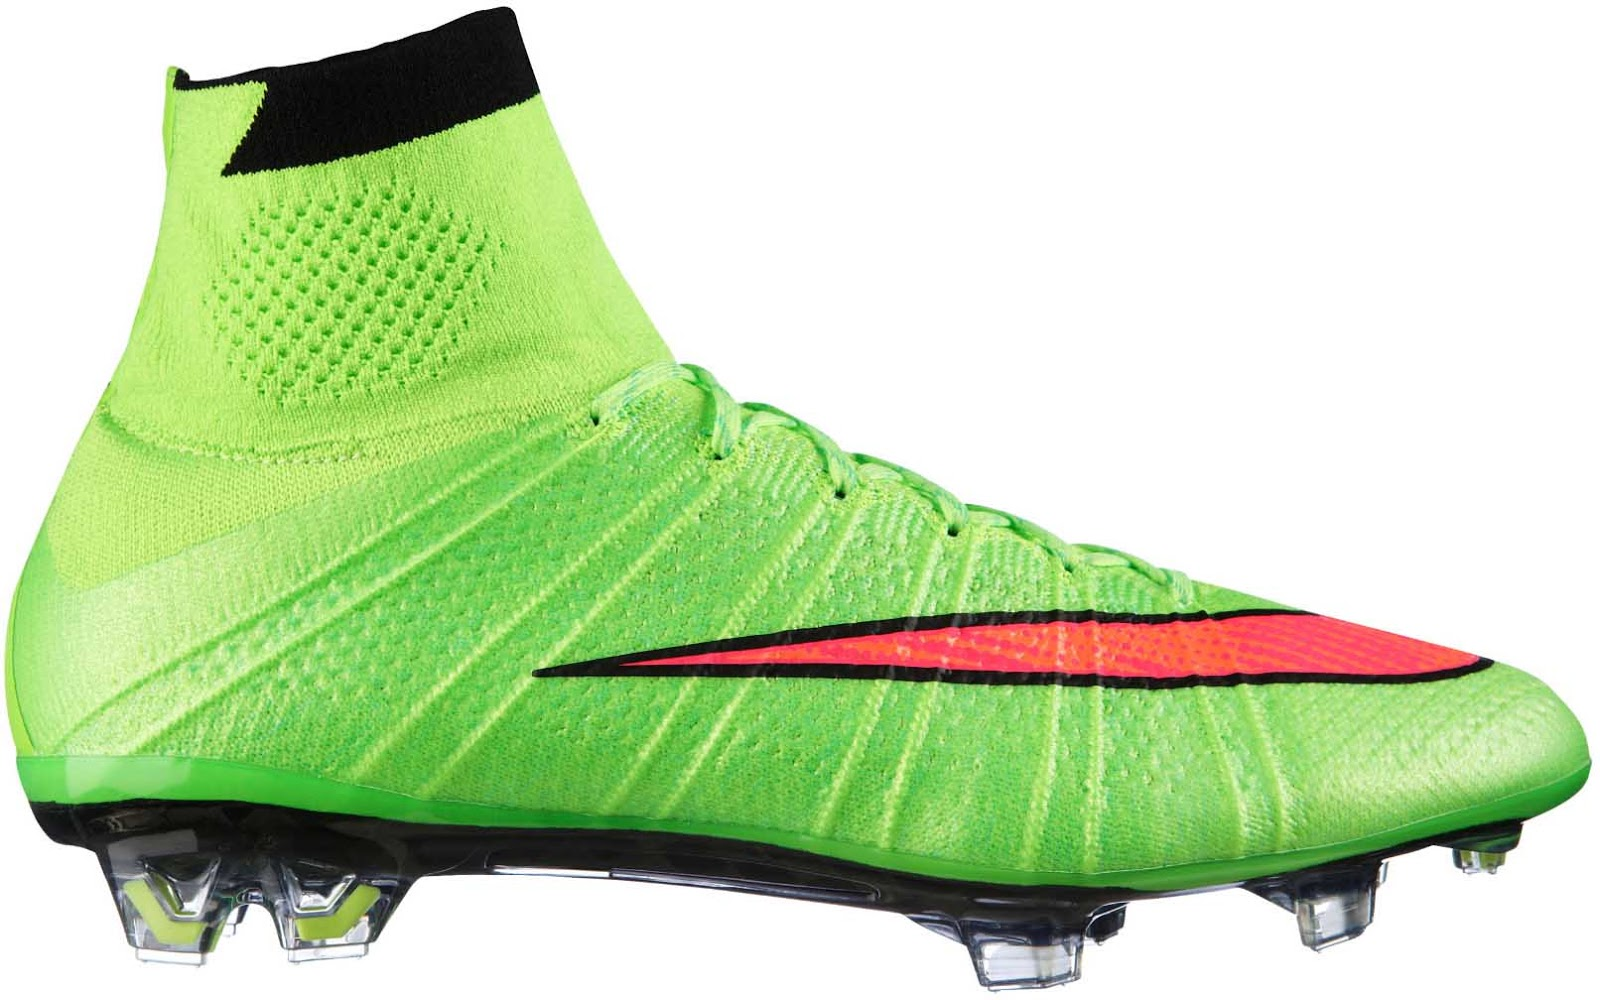 8e9be49a127 discount code for nike mercurial superfly fg sale 5595a 9a0a4  wholesale nike  mercurial superfly electric green hyper punch black volt 5207f eee64